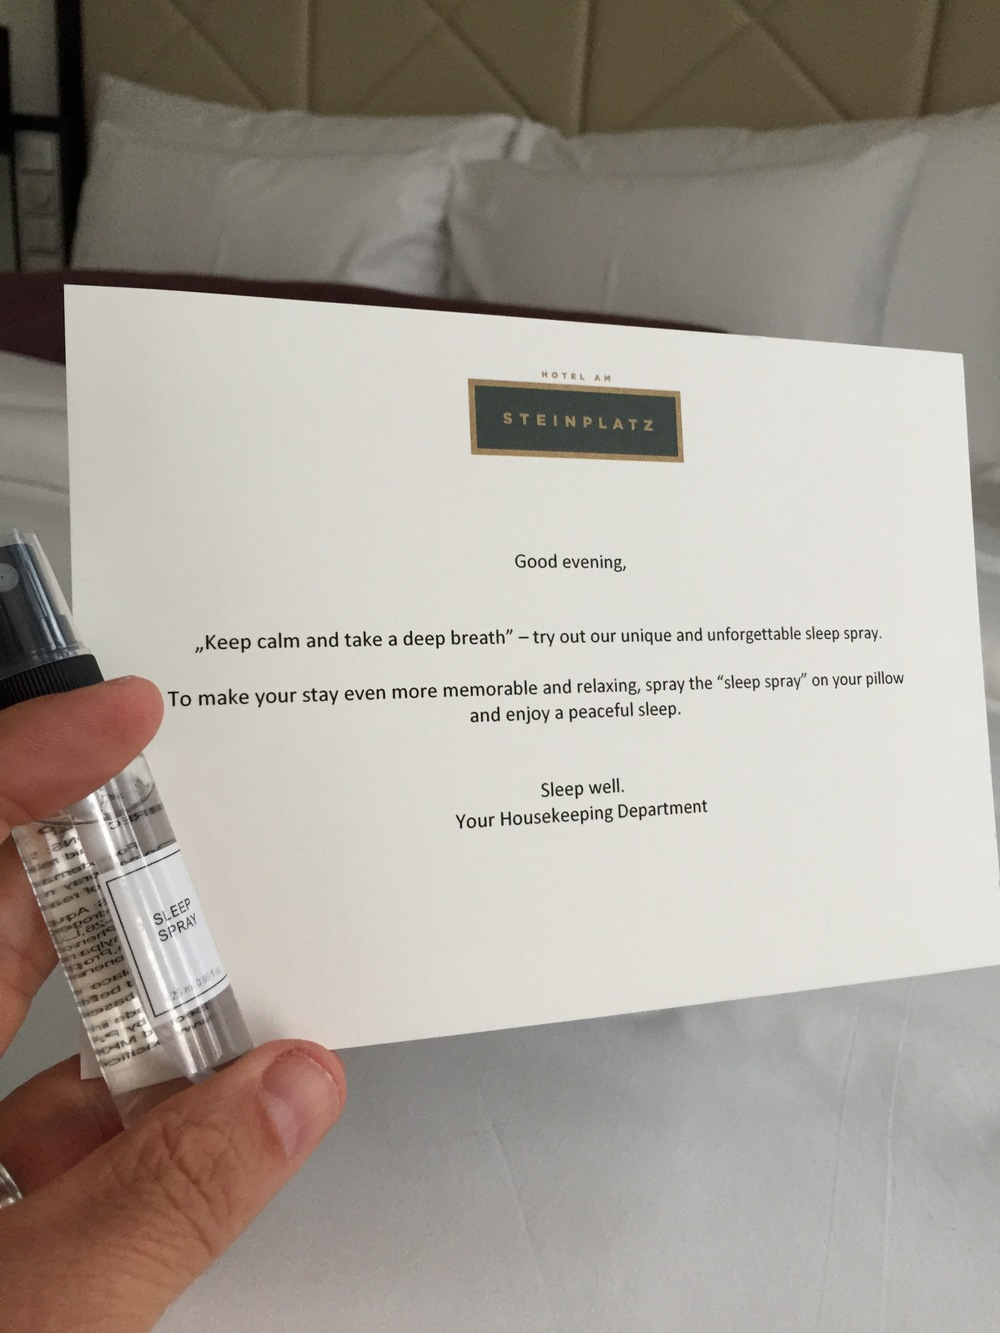 Check out this cool surprise we got one evening. We got a similar surprise each evening (as do all guests).